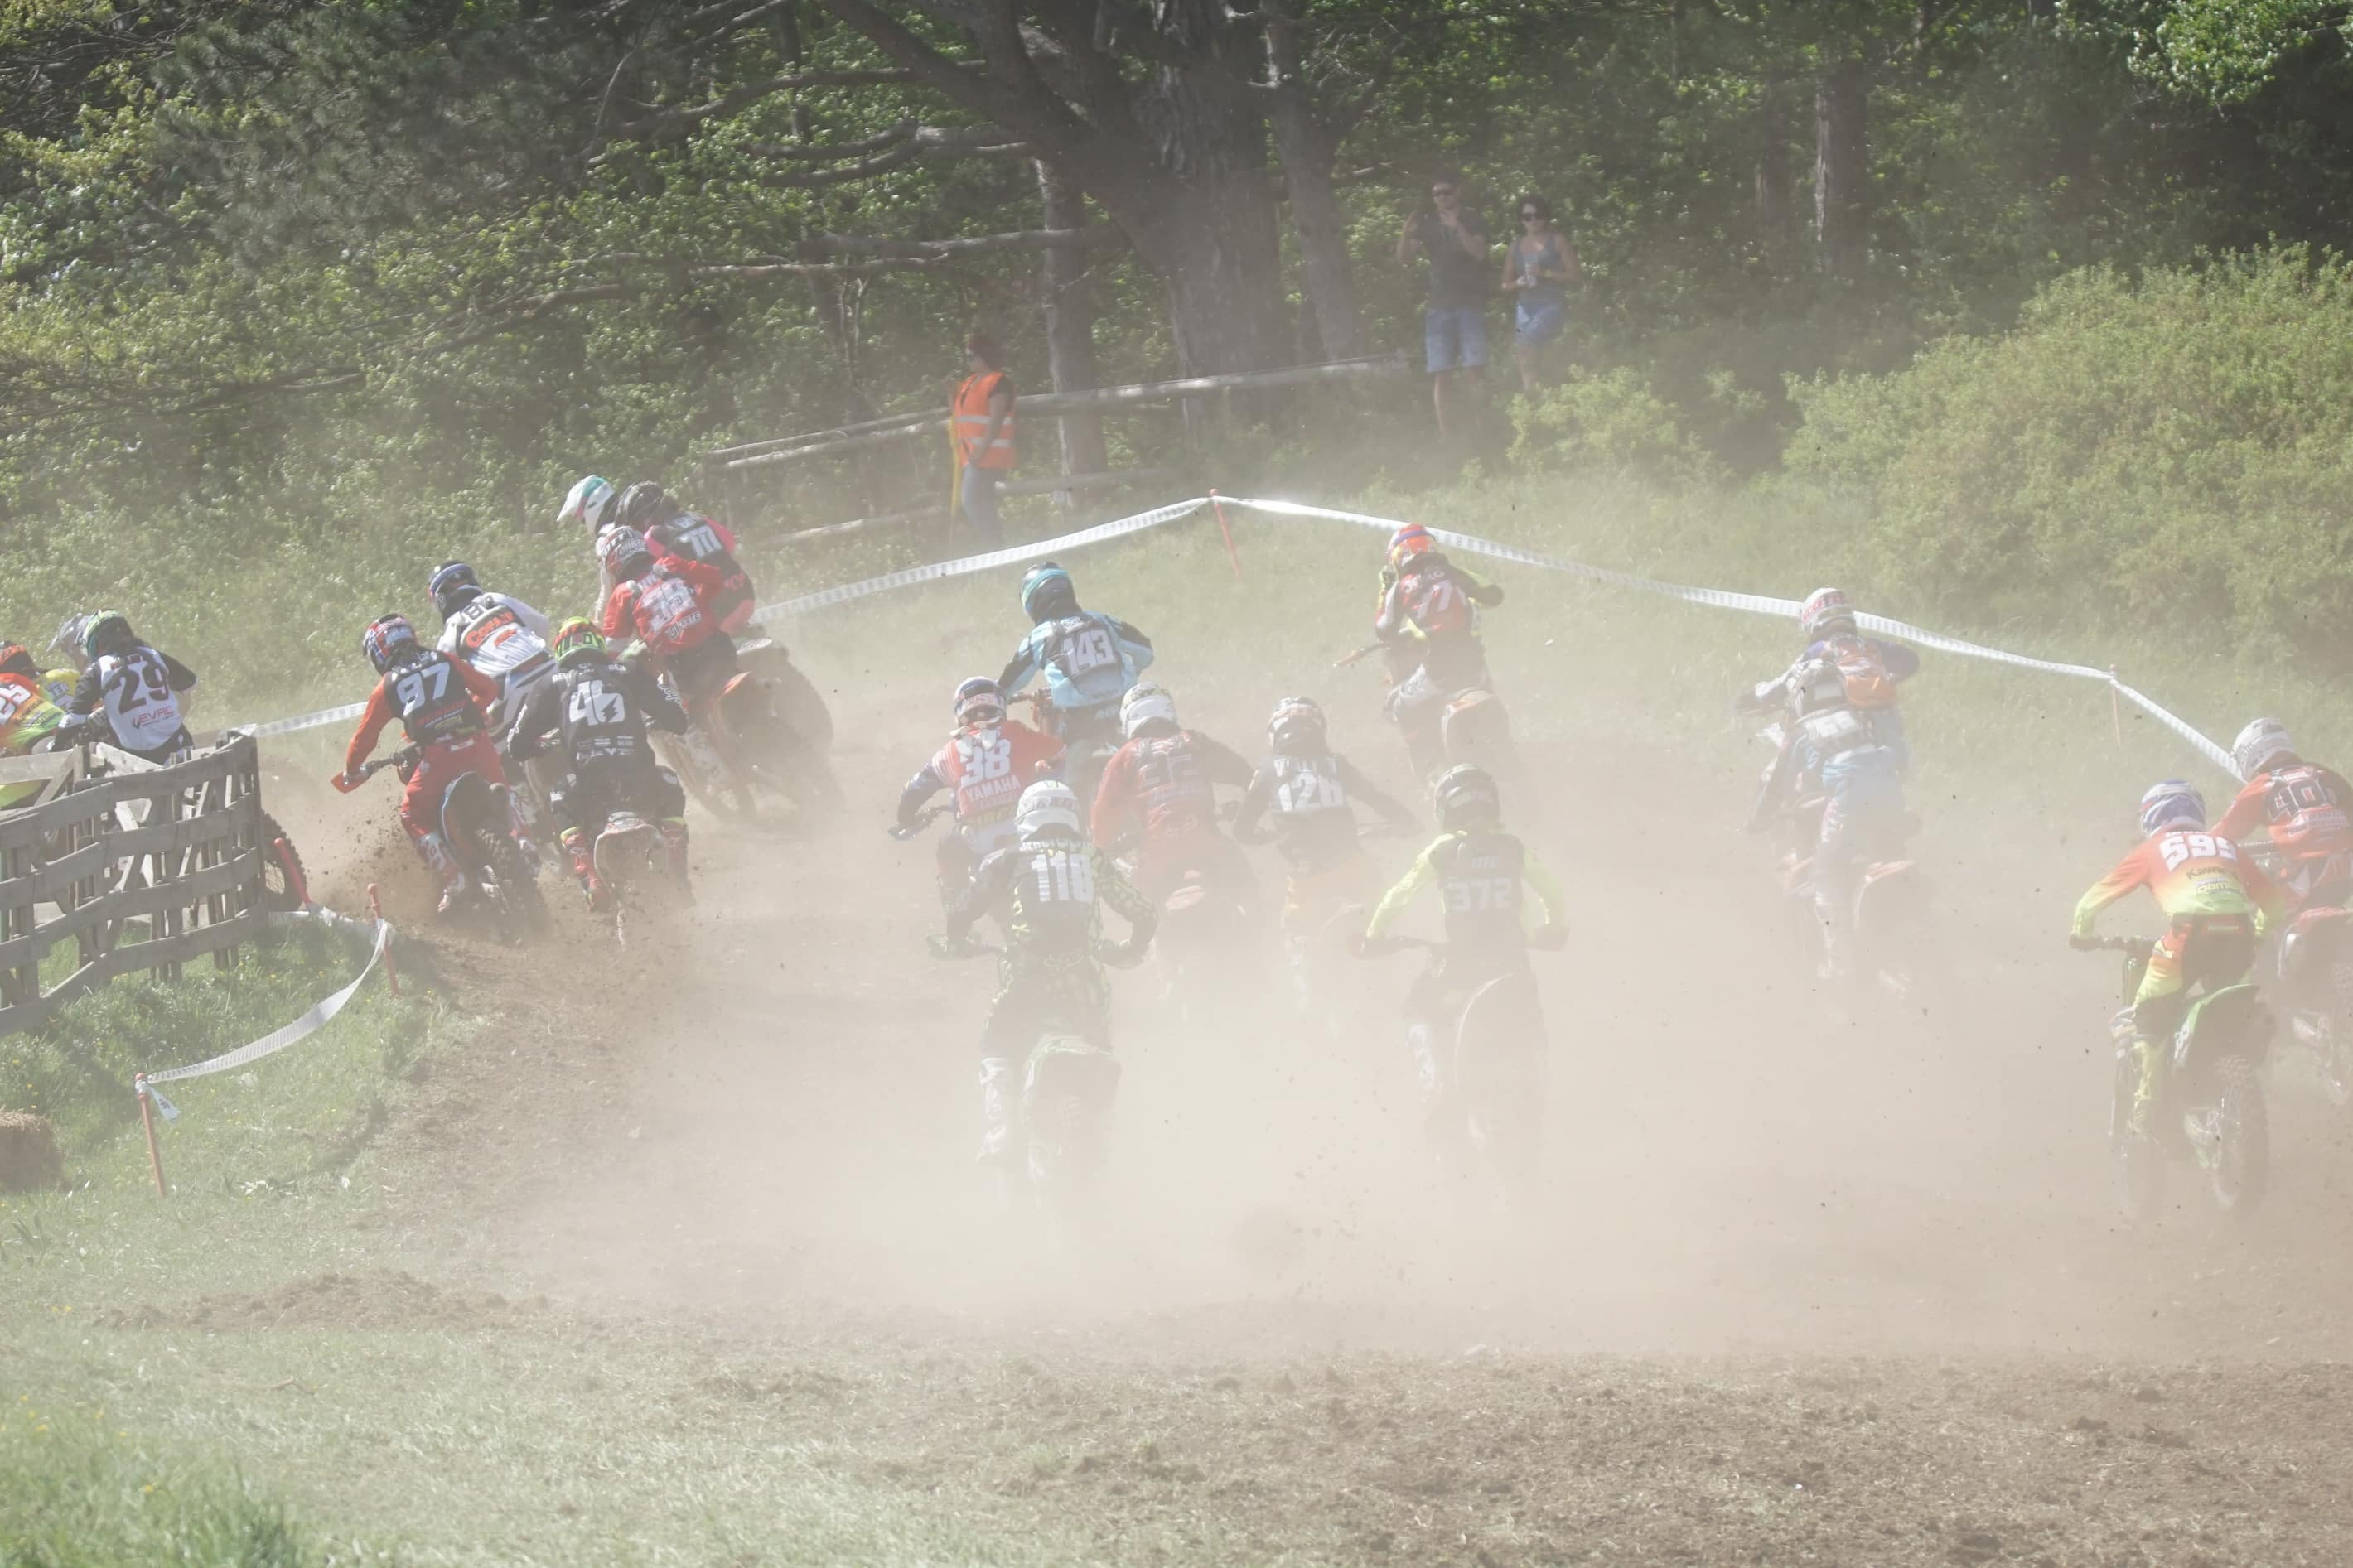 DSC 654_Moto Cross Sittendorf Teil1 am 29.04.2018